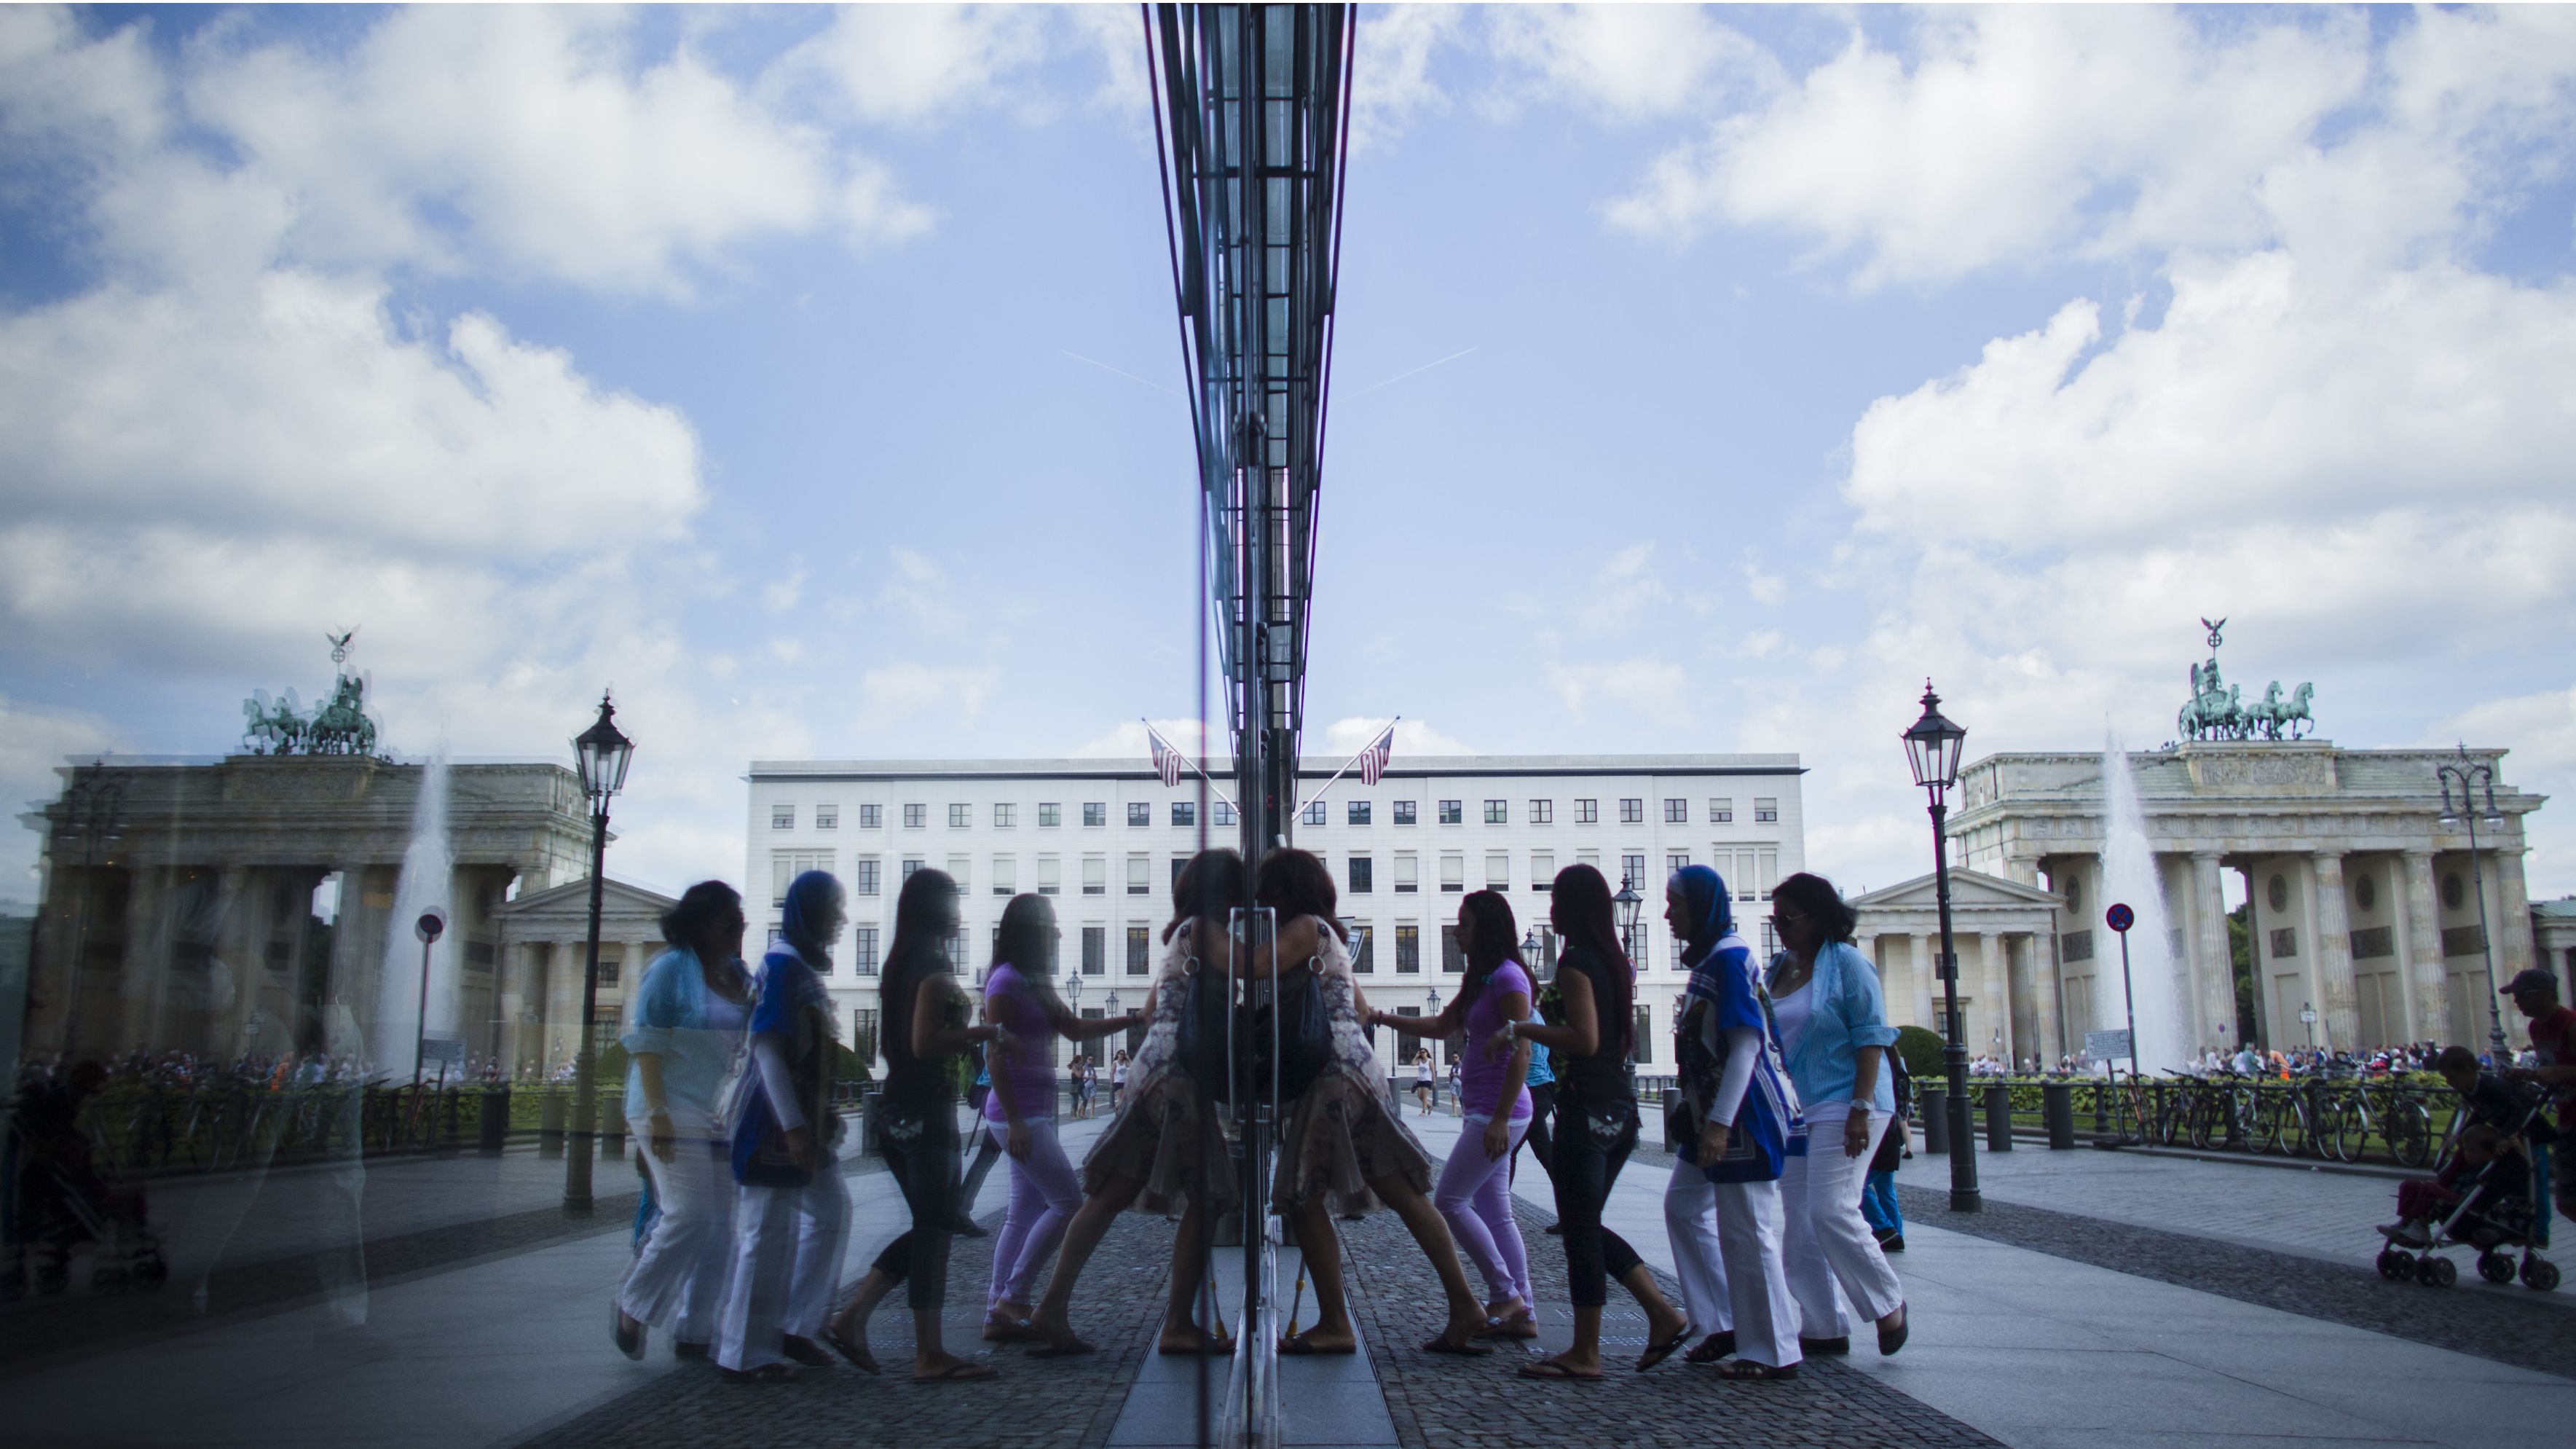 People are reflected in a window as they enter a building in front of Germany's landmark Brandenburg Gate in Berlin, Germany, Thursday, Aug. 23, 2012. Official data show that Germany posted a budget surplus for the first half of this year thanks to its strong labor market, even as other eurozone countries struggle with deficits. (AP Photo/Markus Schreiber)